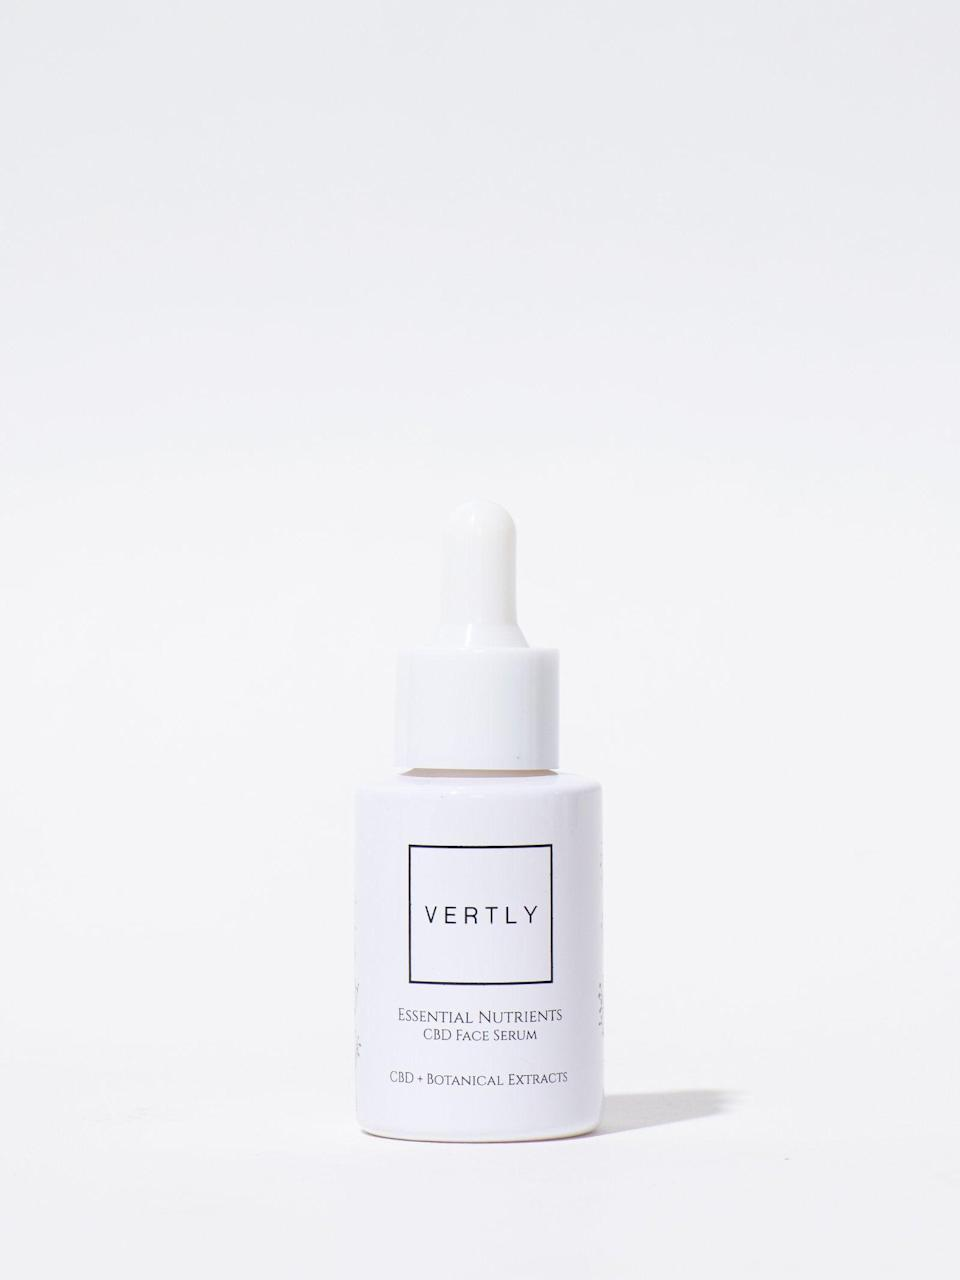 "<h3>Vertly Botanical Extract Face Serum</h3><br>Also from Vertly, this excellent serum contains 300 mg of full-spectrum CBD to help soothe skin and keep it in tip-top shape.<br><br><strong>Vertly</strong> Botanical Extract Face Serum, $, available at <a href=""https://go.skimresources.com/?id=30283X879131&url=https%3A%2F%2Fstandarddose.com%2Fproducts%2Fvertly-botanical-extract-face-serum"" rel=""nofollow noopener"" target=""_blank"" data-ylk=""slk:Standard Dose"" class=""link rapid-noclick-resp"">Standard Dose</a>"